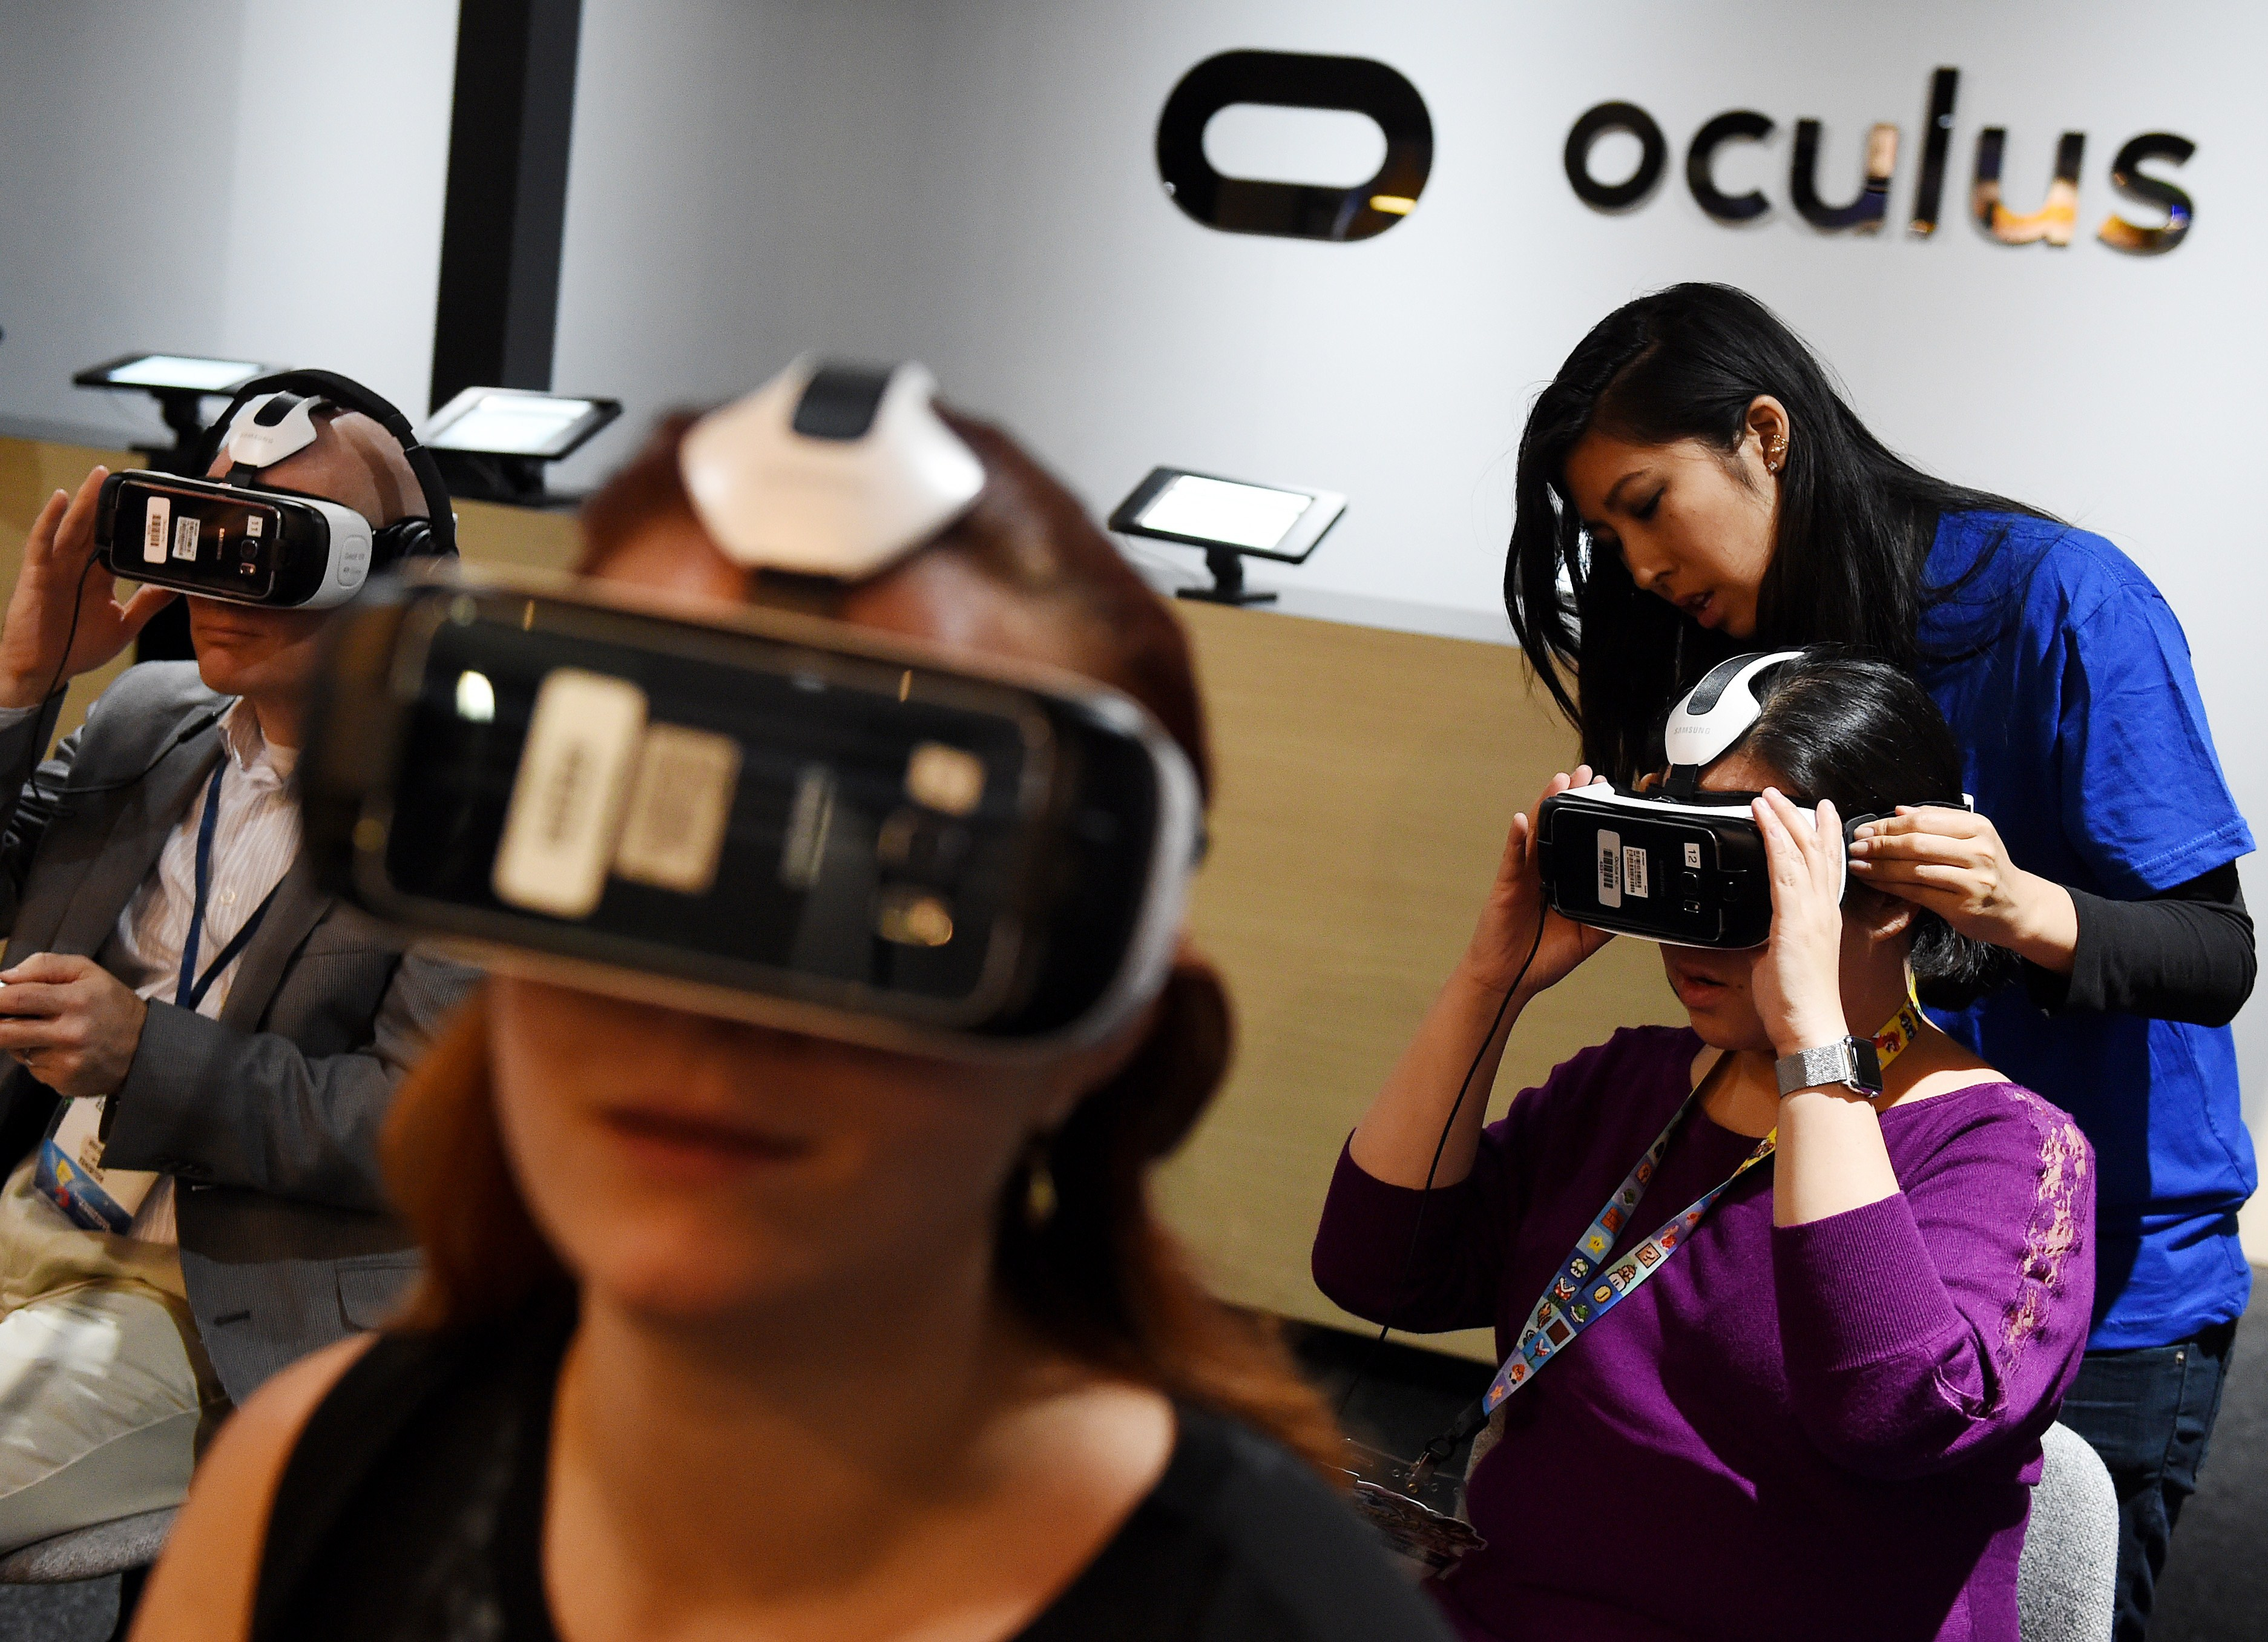 Gamers test a new Virtual Reality game headset at the Oculus display on the second day of the Electronic Entertainment Expo, known as E3 at the Convention Center in Los Angeles, California on June 17, 2015.